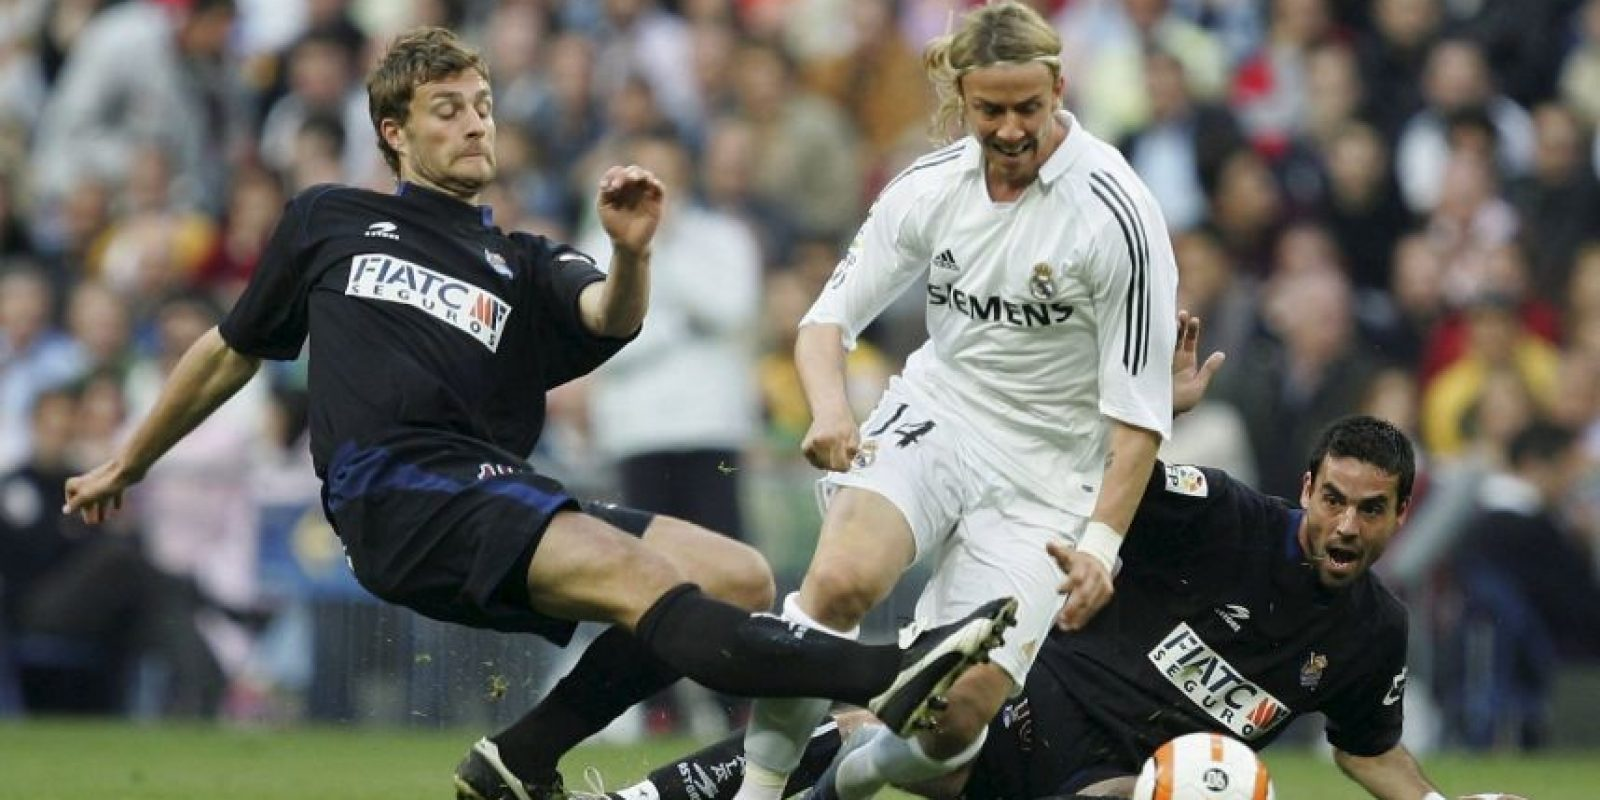 10. Morten Skoubo (11 segundos) / Real Sociedad vs. Valencia en 2006. Foto: Getty Images